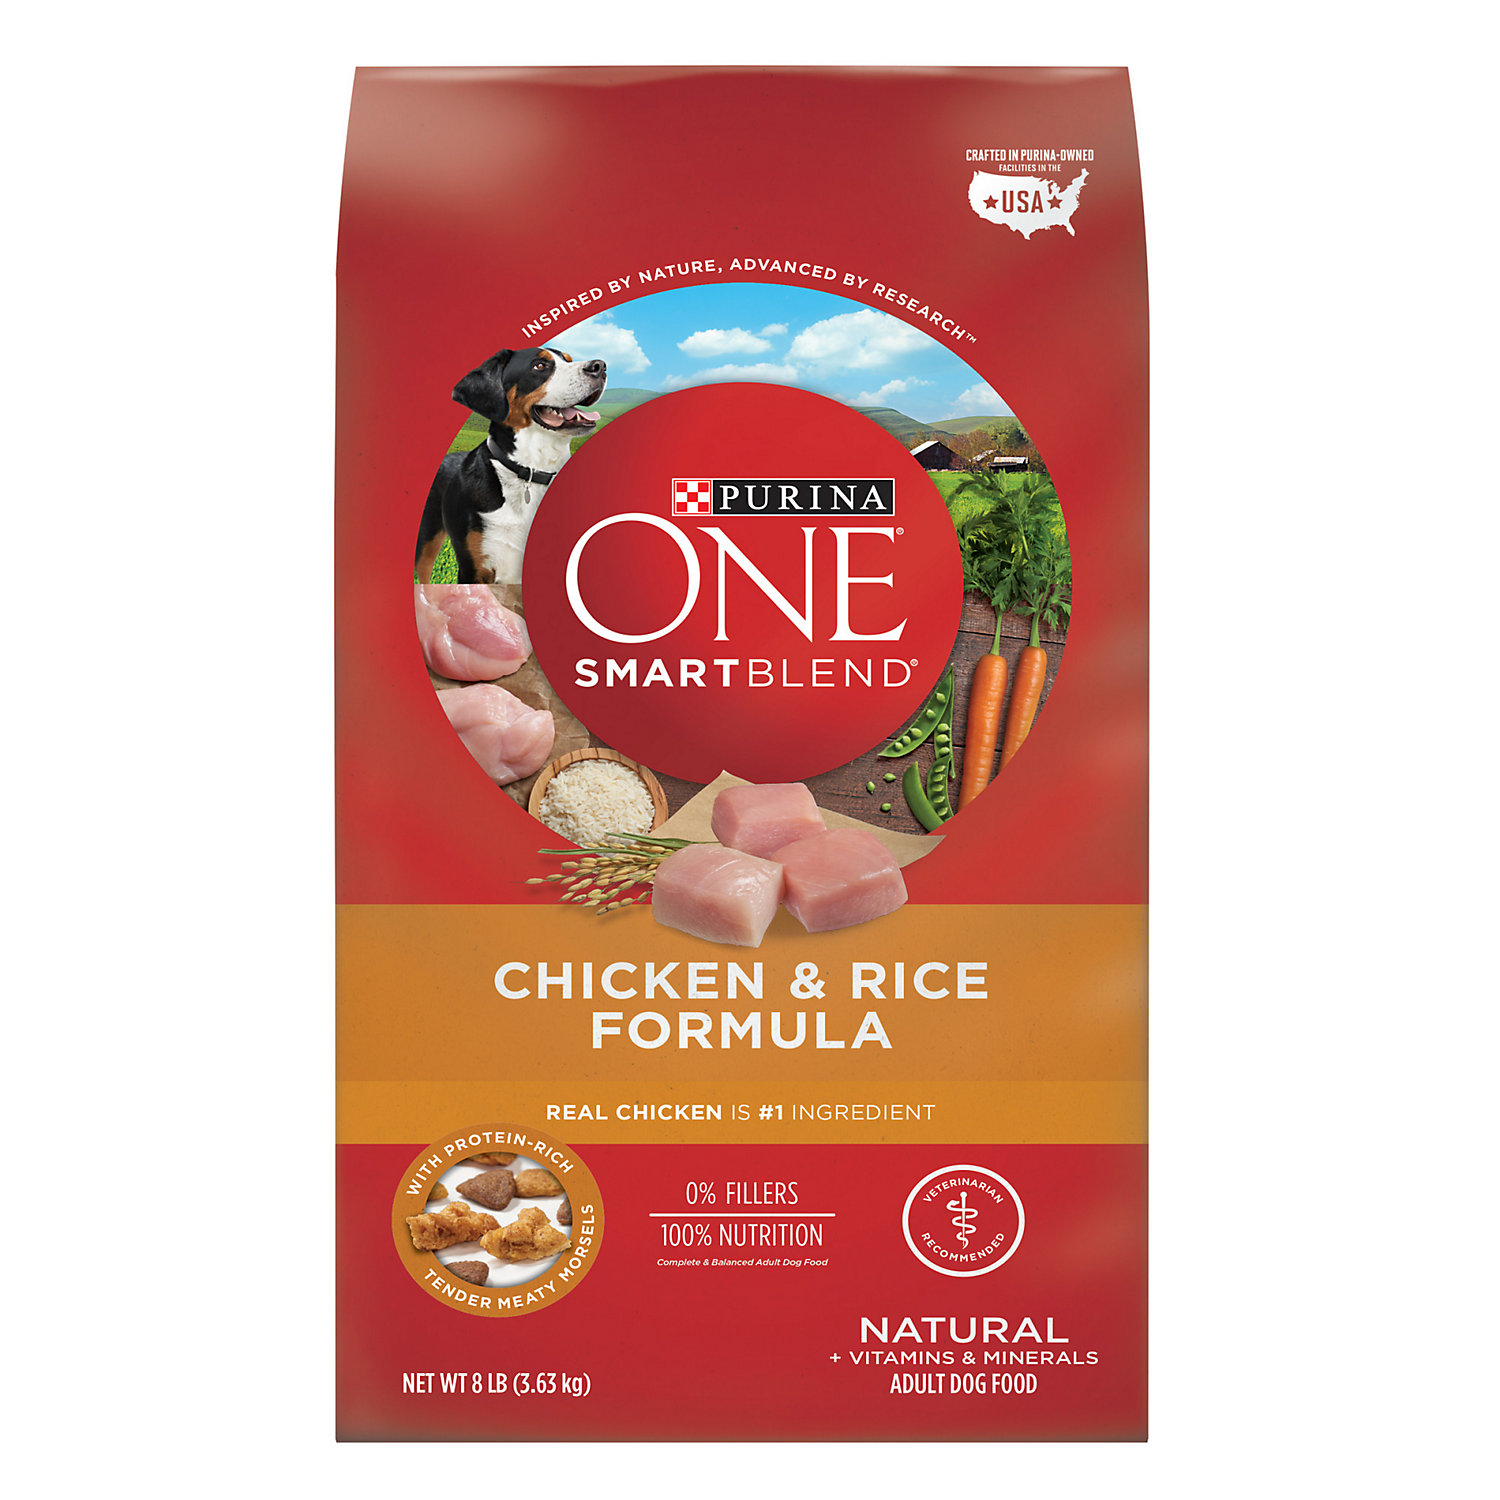 Purina One Smartblend Chicken Rice Formula Dog Food 8 Lbs.